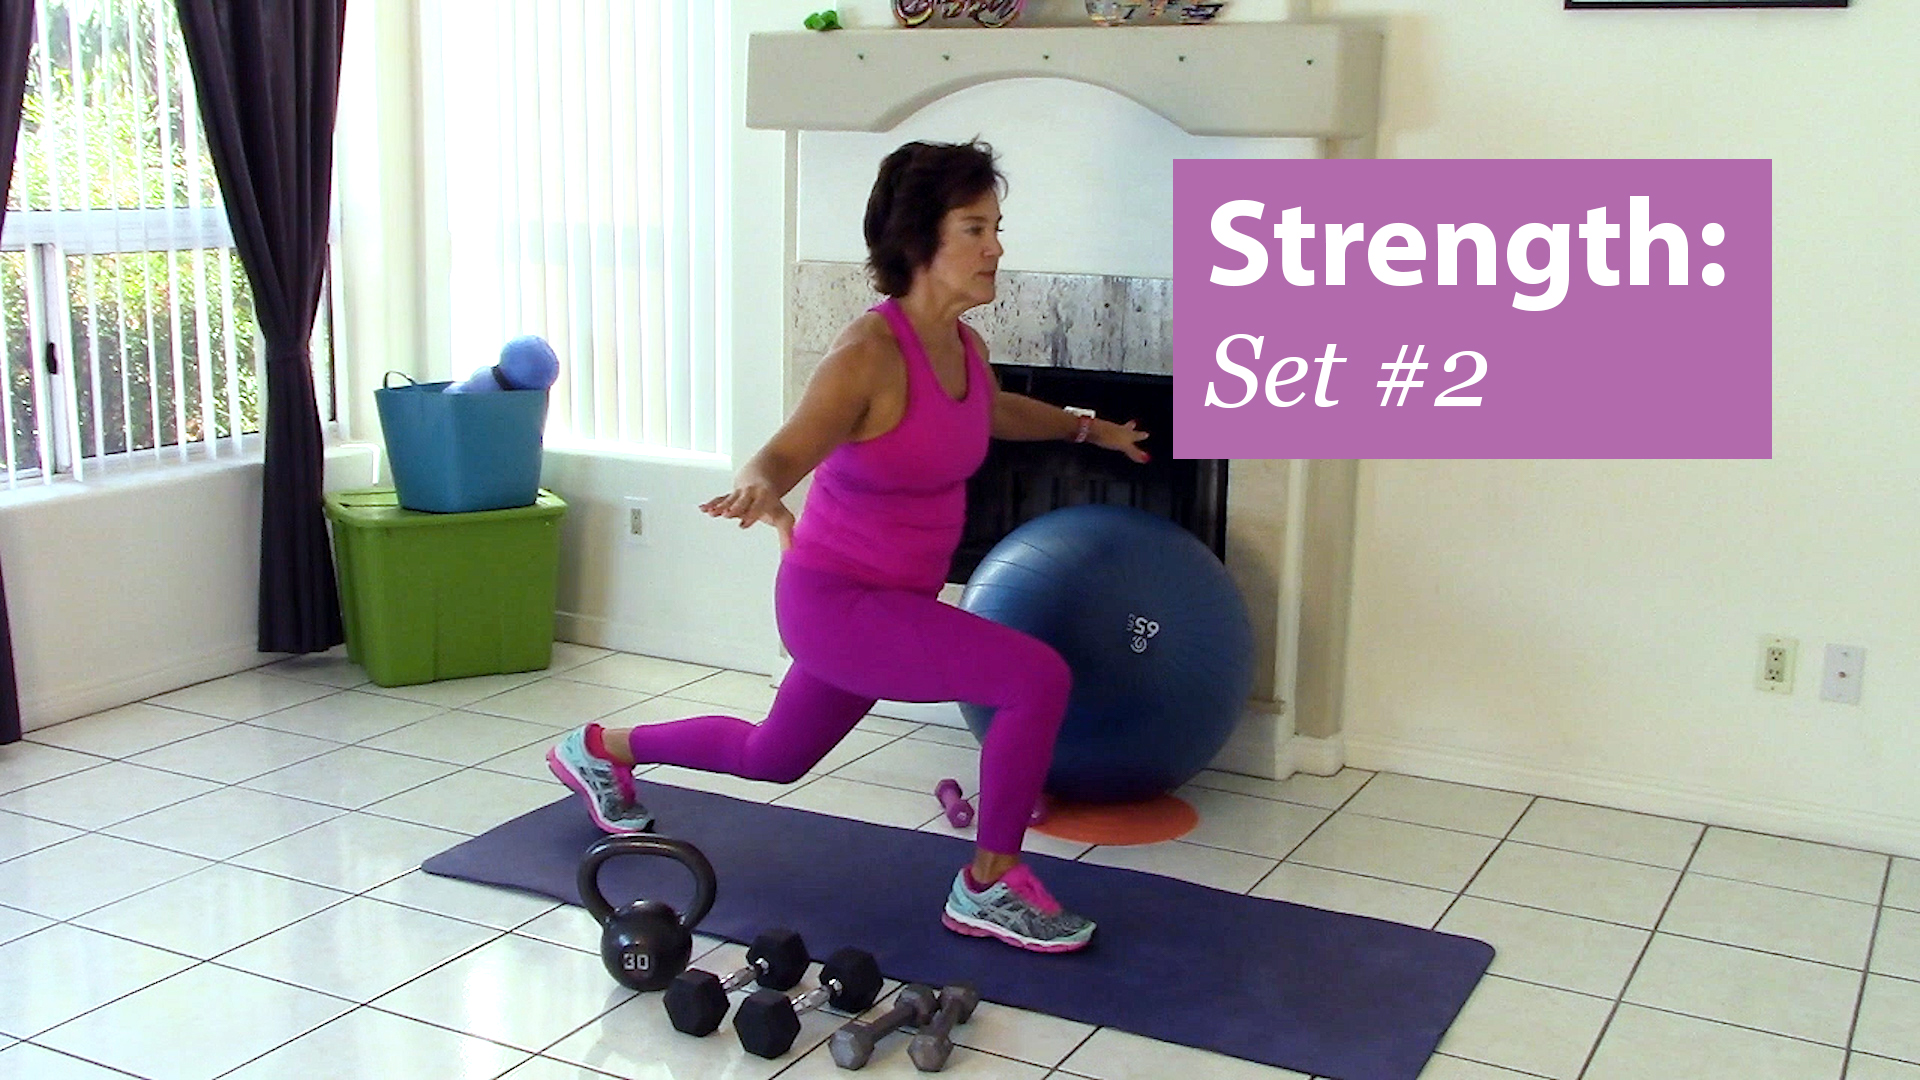 Debra Atkinson of Flipping 50 does another 5 minute Strength Training Workout for the Prime Women Fitness Challenge